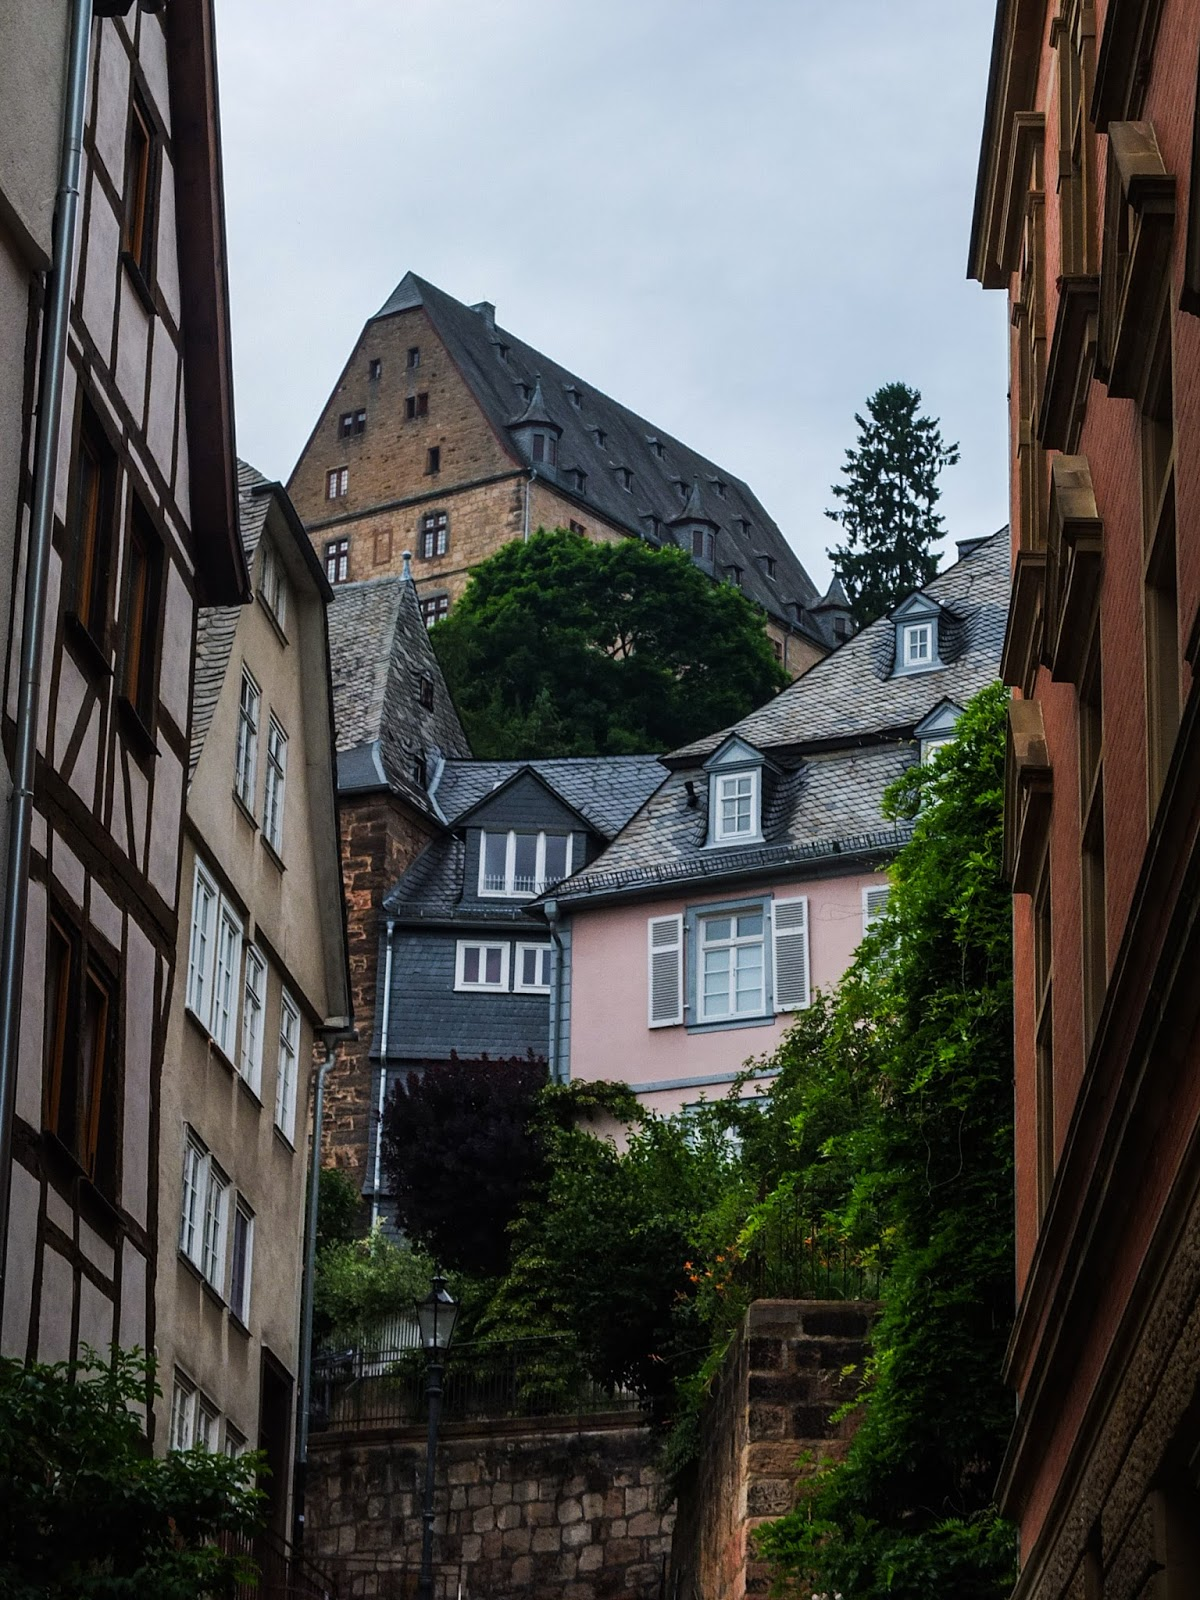 View between buildings in Marburg looking to other buildings up the hill.